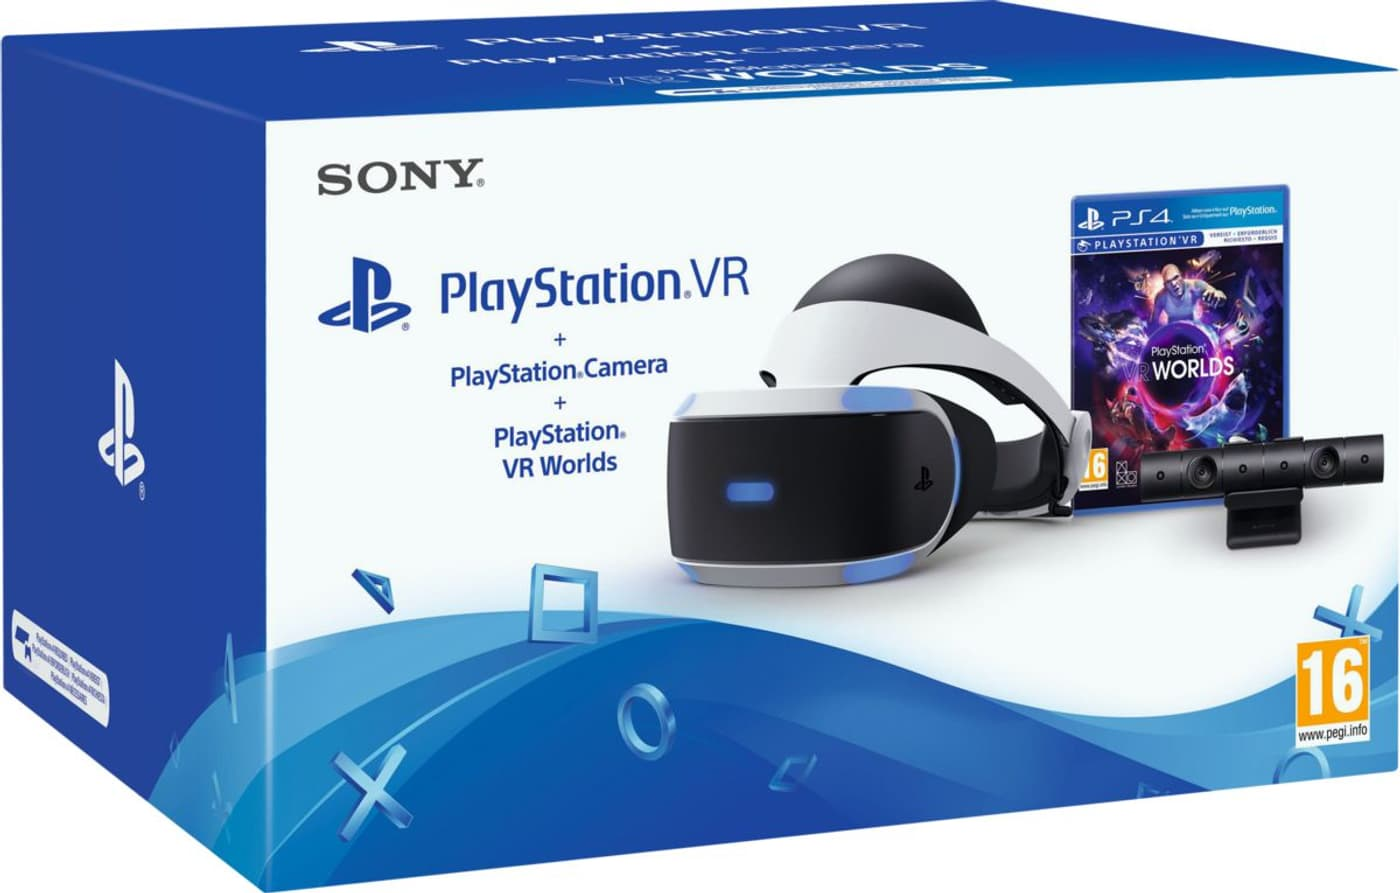 luxe super populaire 2019 real Sony PS4 VR Brille V2 + Camera + VR Worlds Lunettes VR